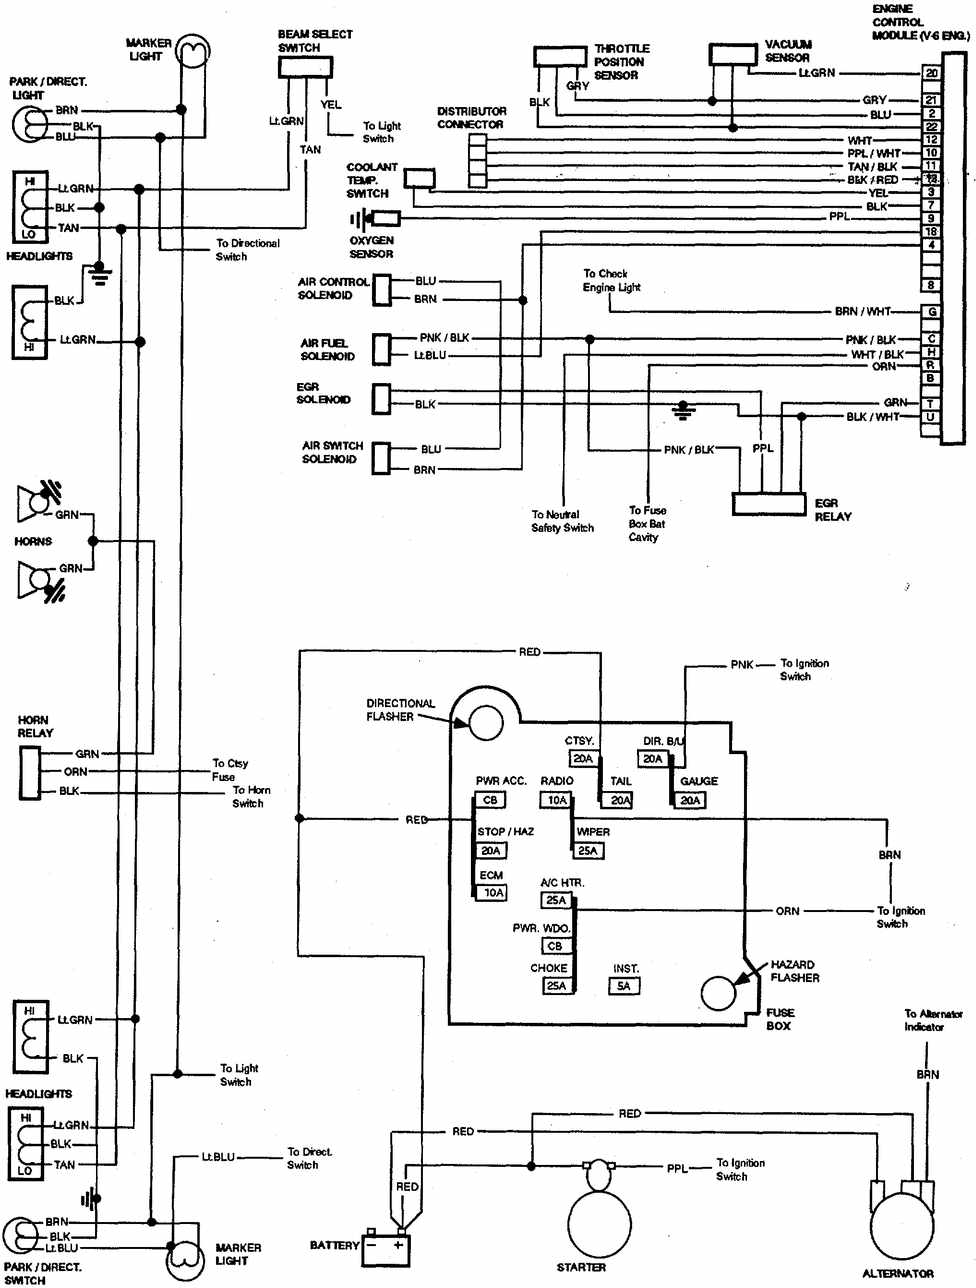 electrical panel breaker box wiring diagram 2